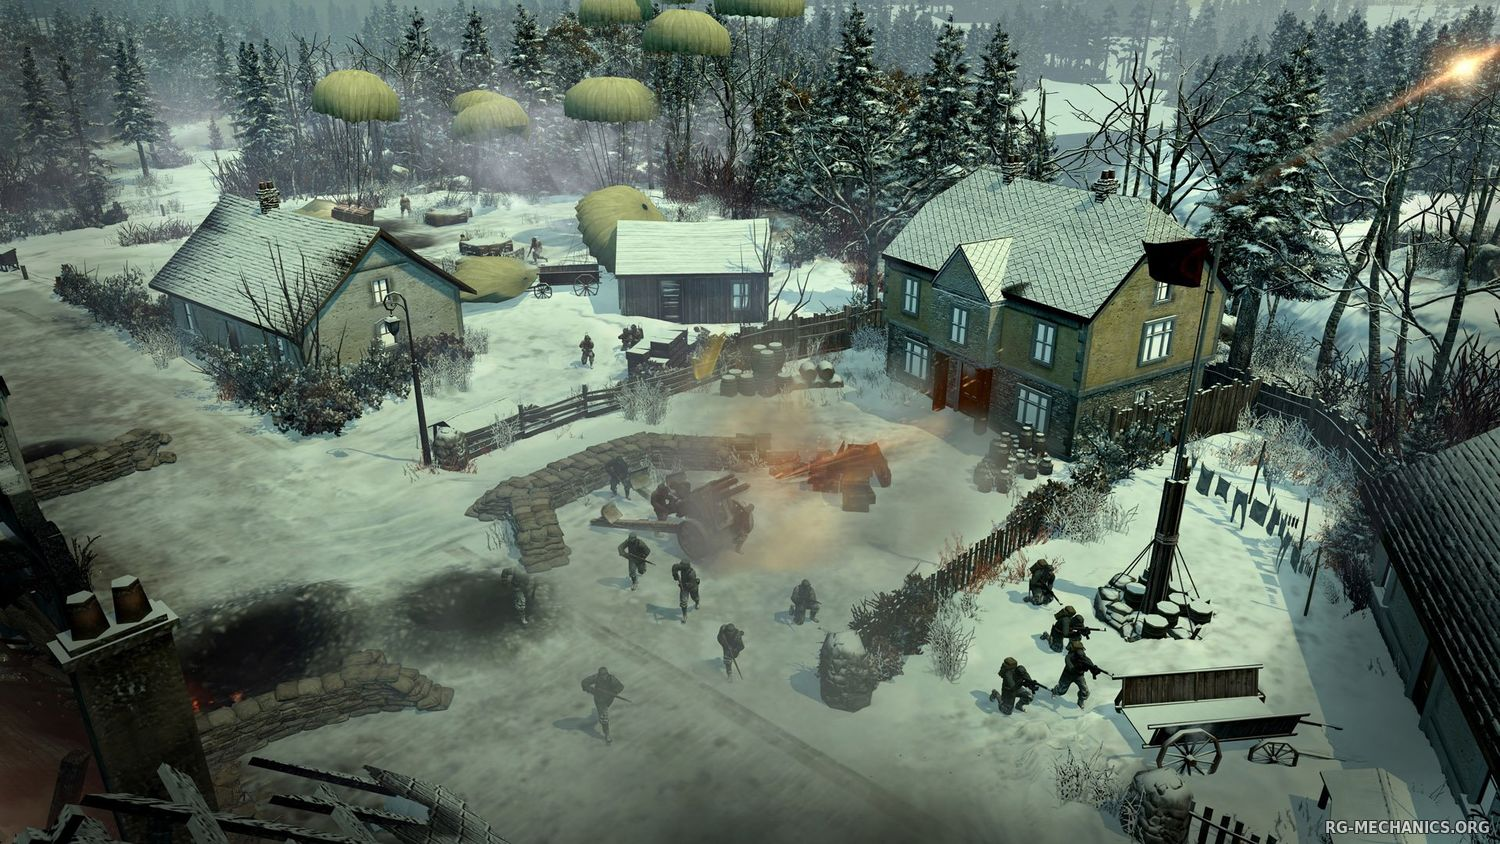 Скриншот 3 к игре Company of Heroes 2: Master Collection [v 4.0.0.21701 + DLC's] (2014) PC | RePack от R.G. Механики